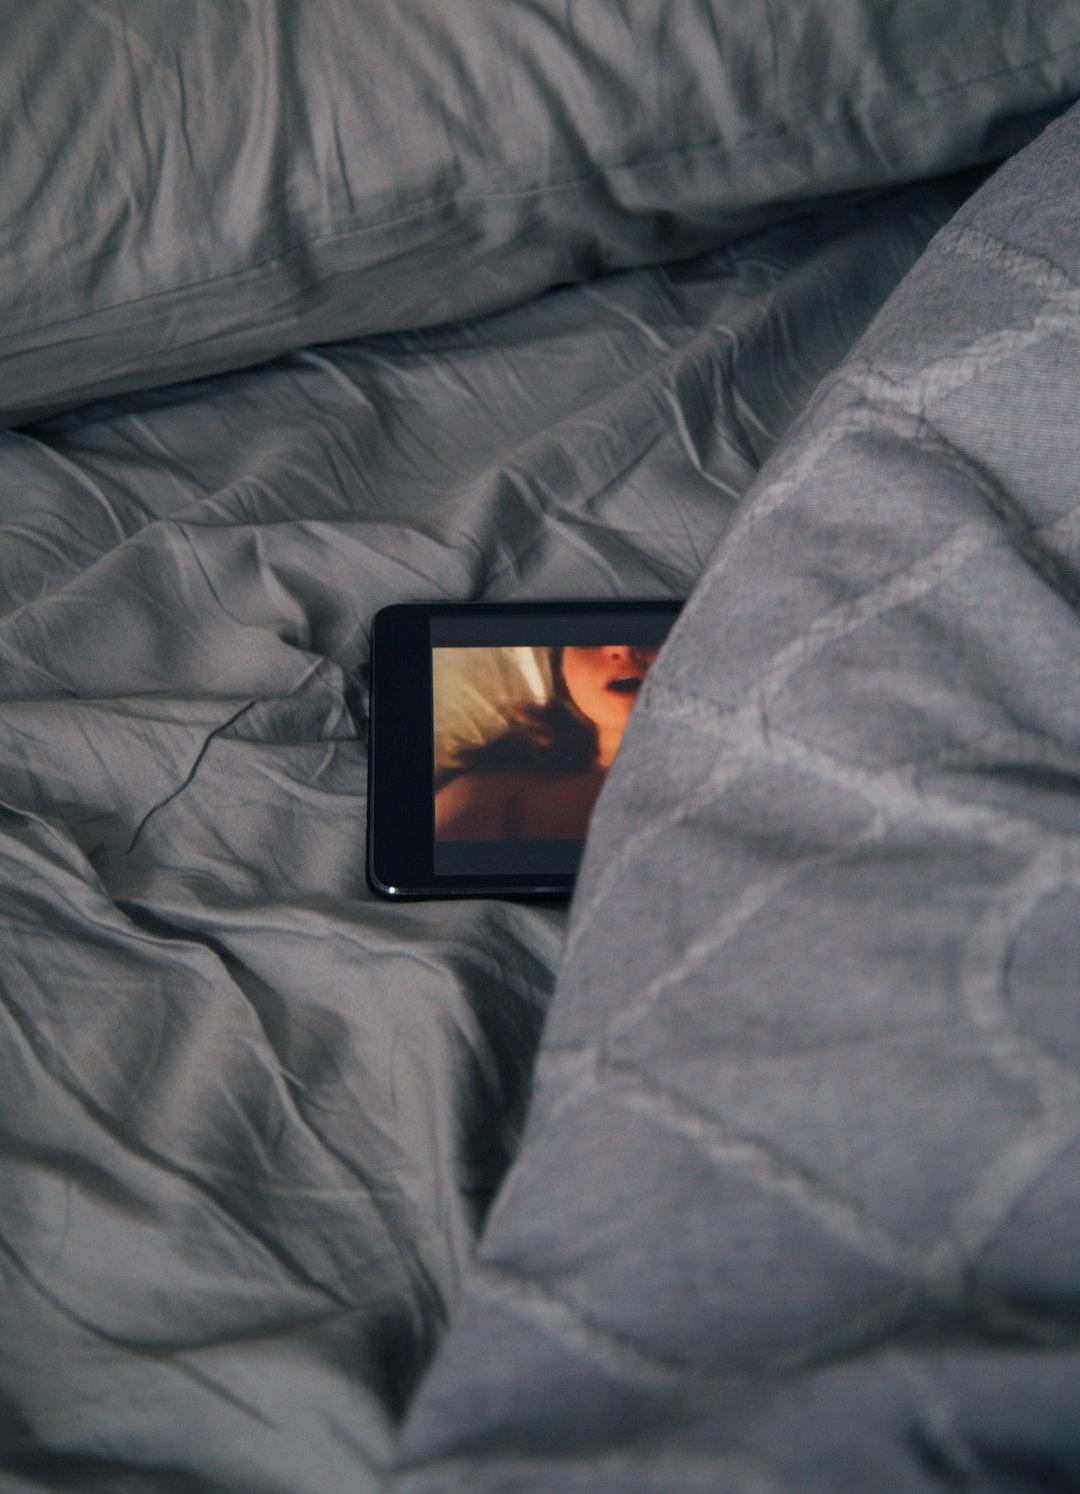 tablet on bed